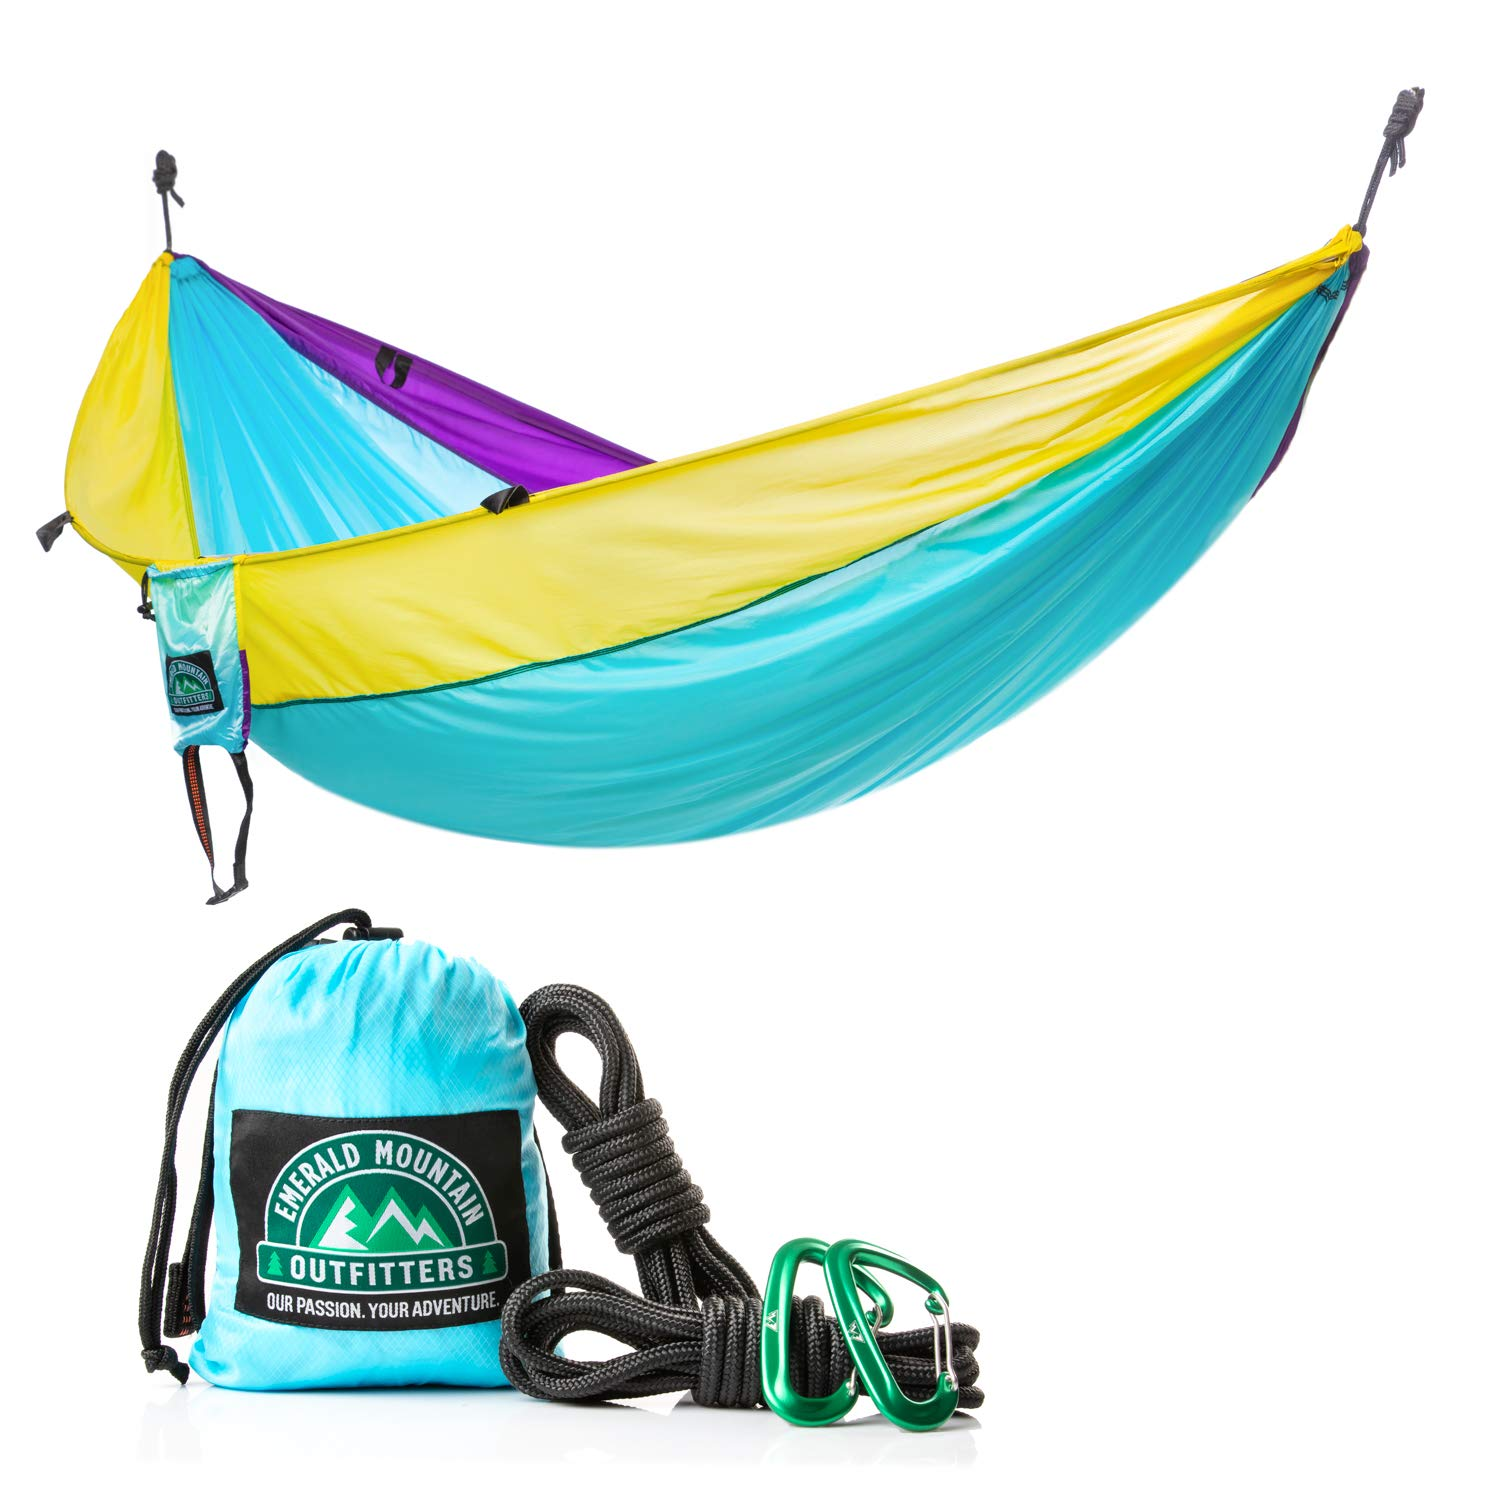 Emerald Mountain 2 Person Camping Hammock – Double Hammock, Parachute Nylon, Snag-Proof Carabiners, 6 Gear Loops – for Outdoor Use, Hiking, Backpacking, Travel, Sleeping, Survival